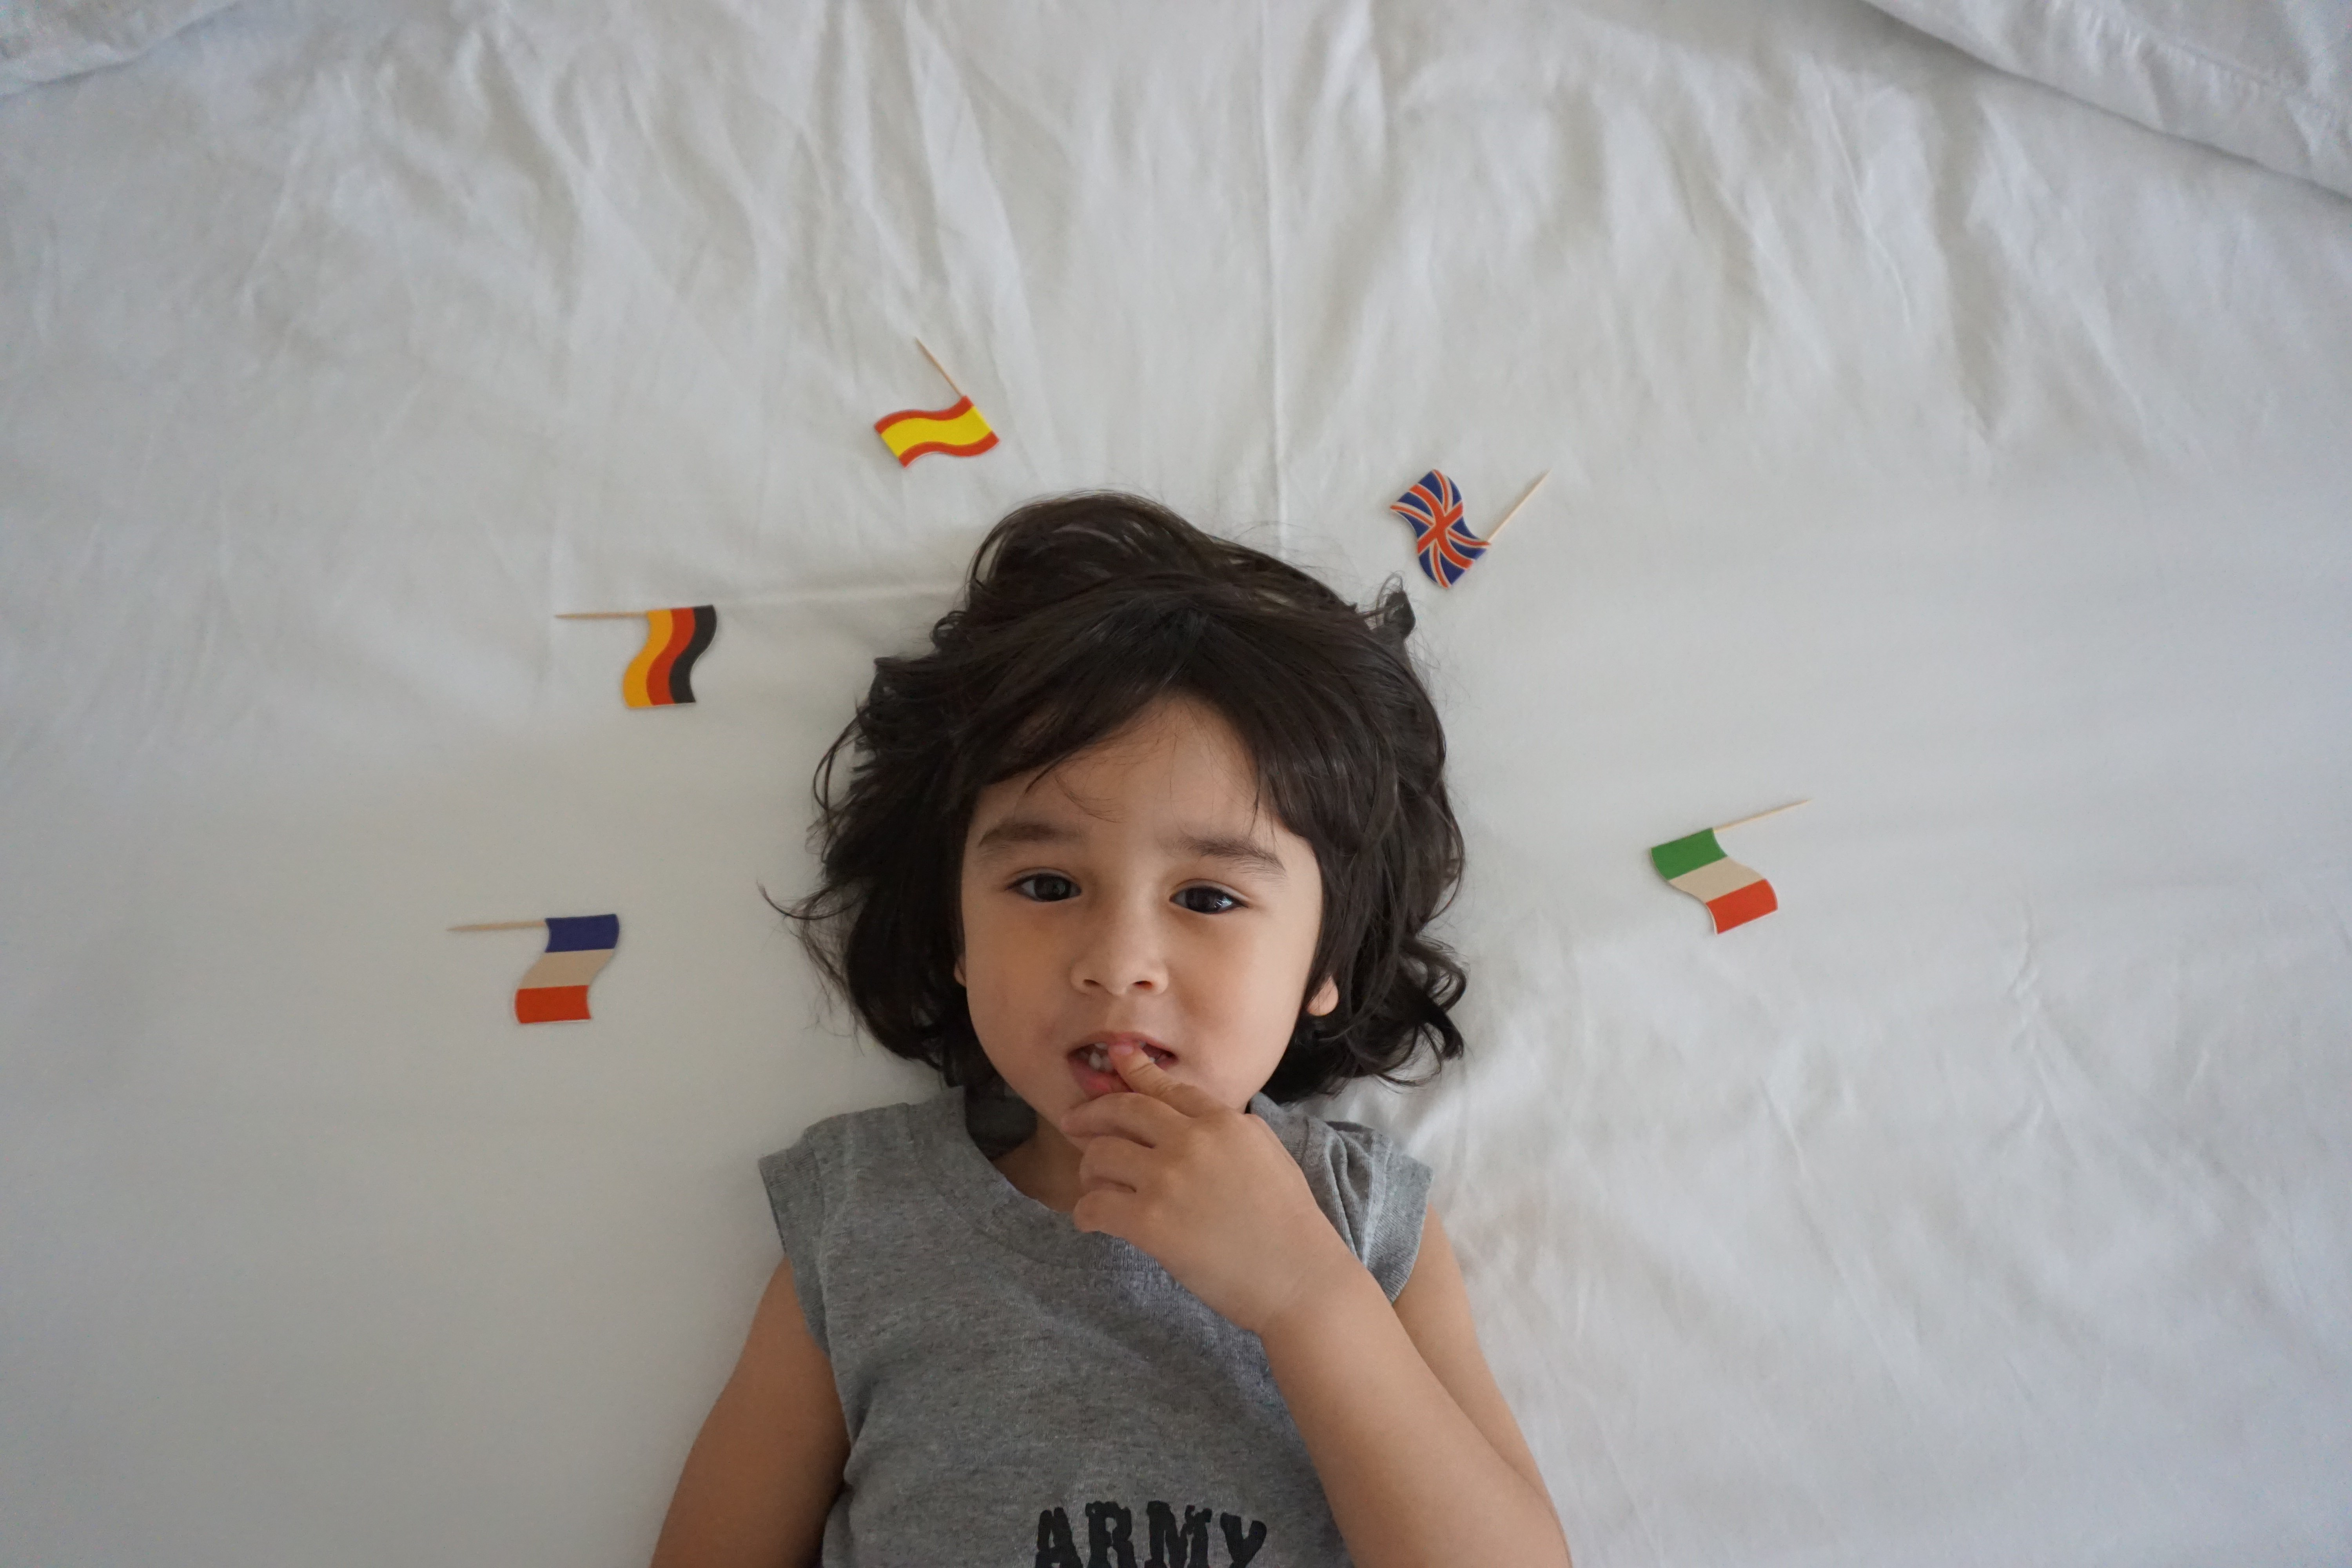 Noah on bed with flags Feb 2017 2